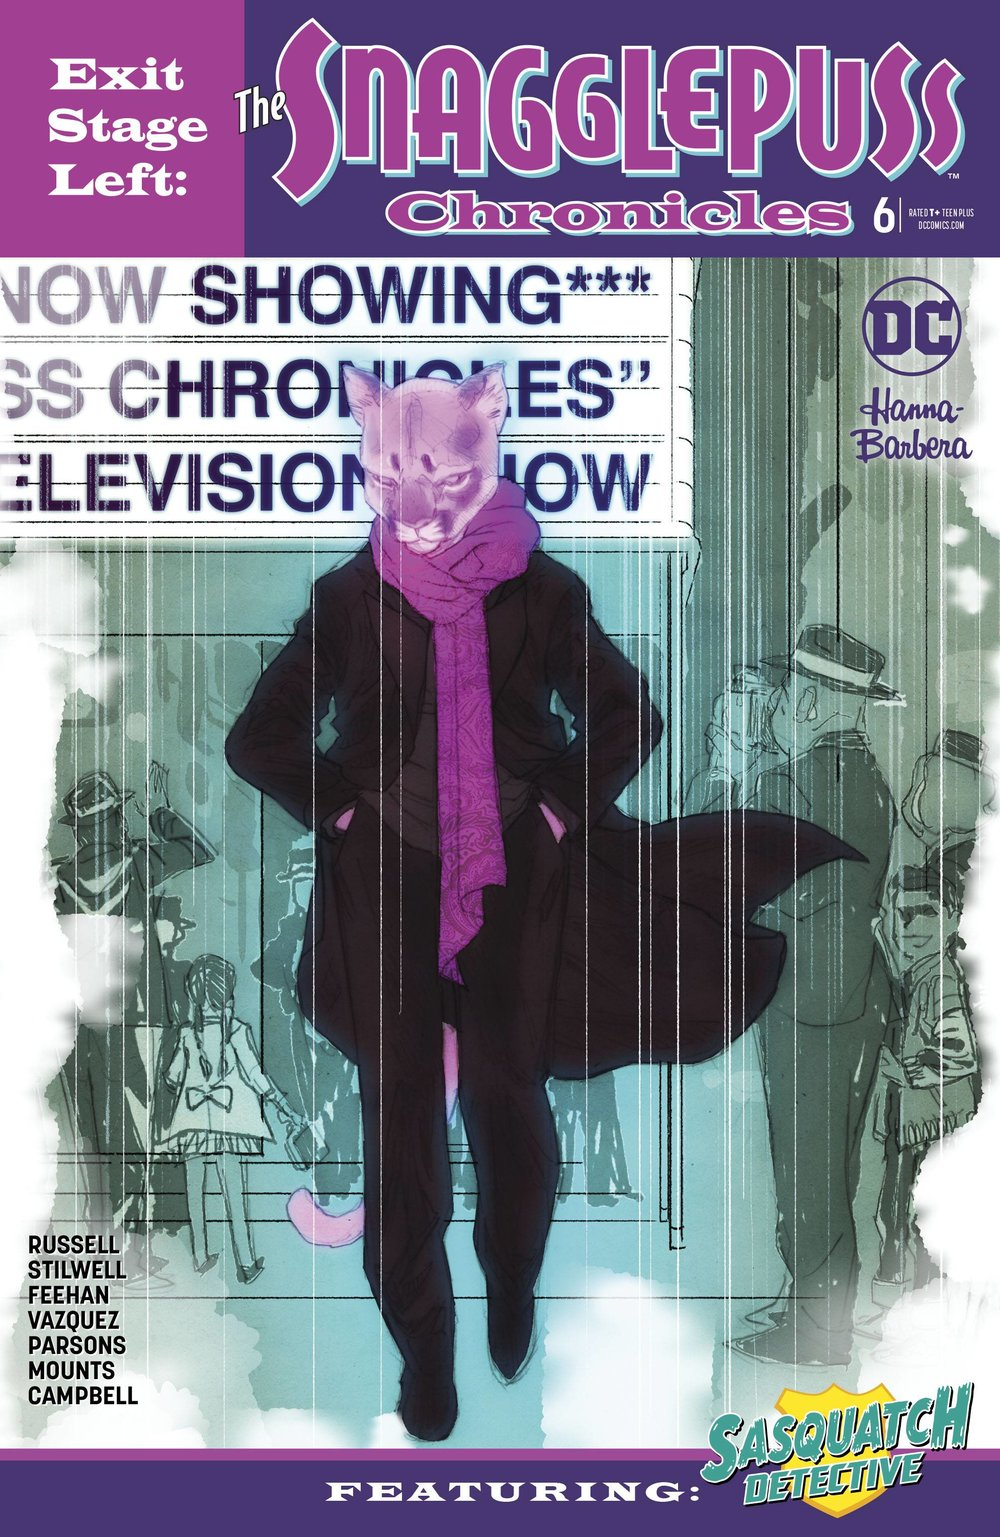 EXIT STAGE LEFT THE SNAGGLEPUSS CHRONICLES 6 of 6.jpg